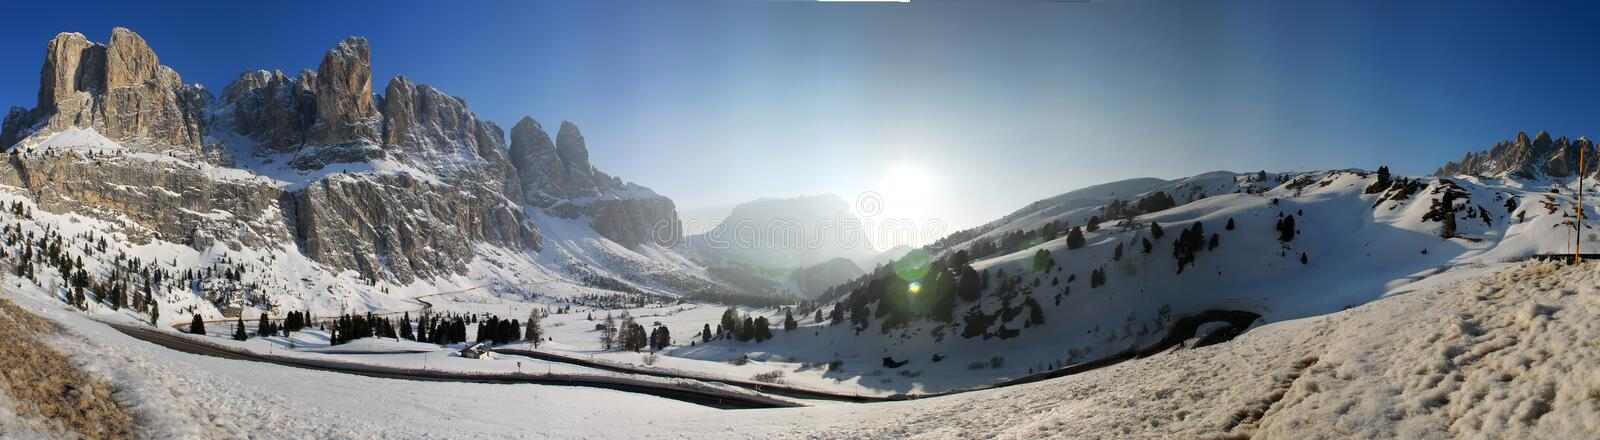 Alpes italiens images stock